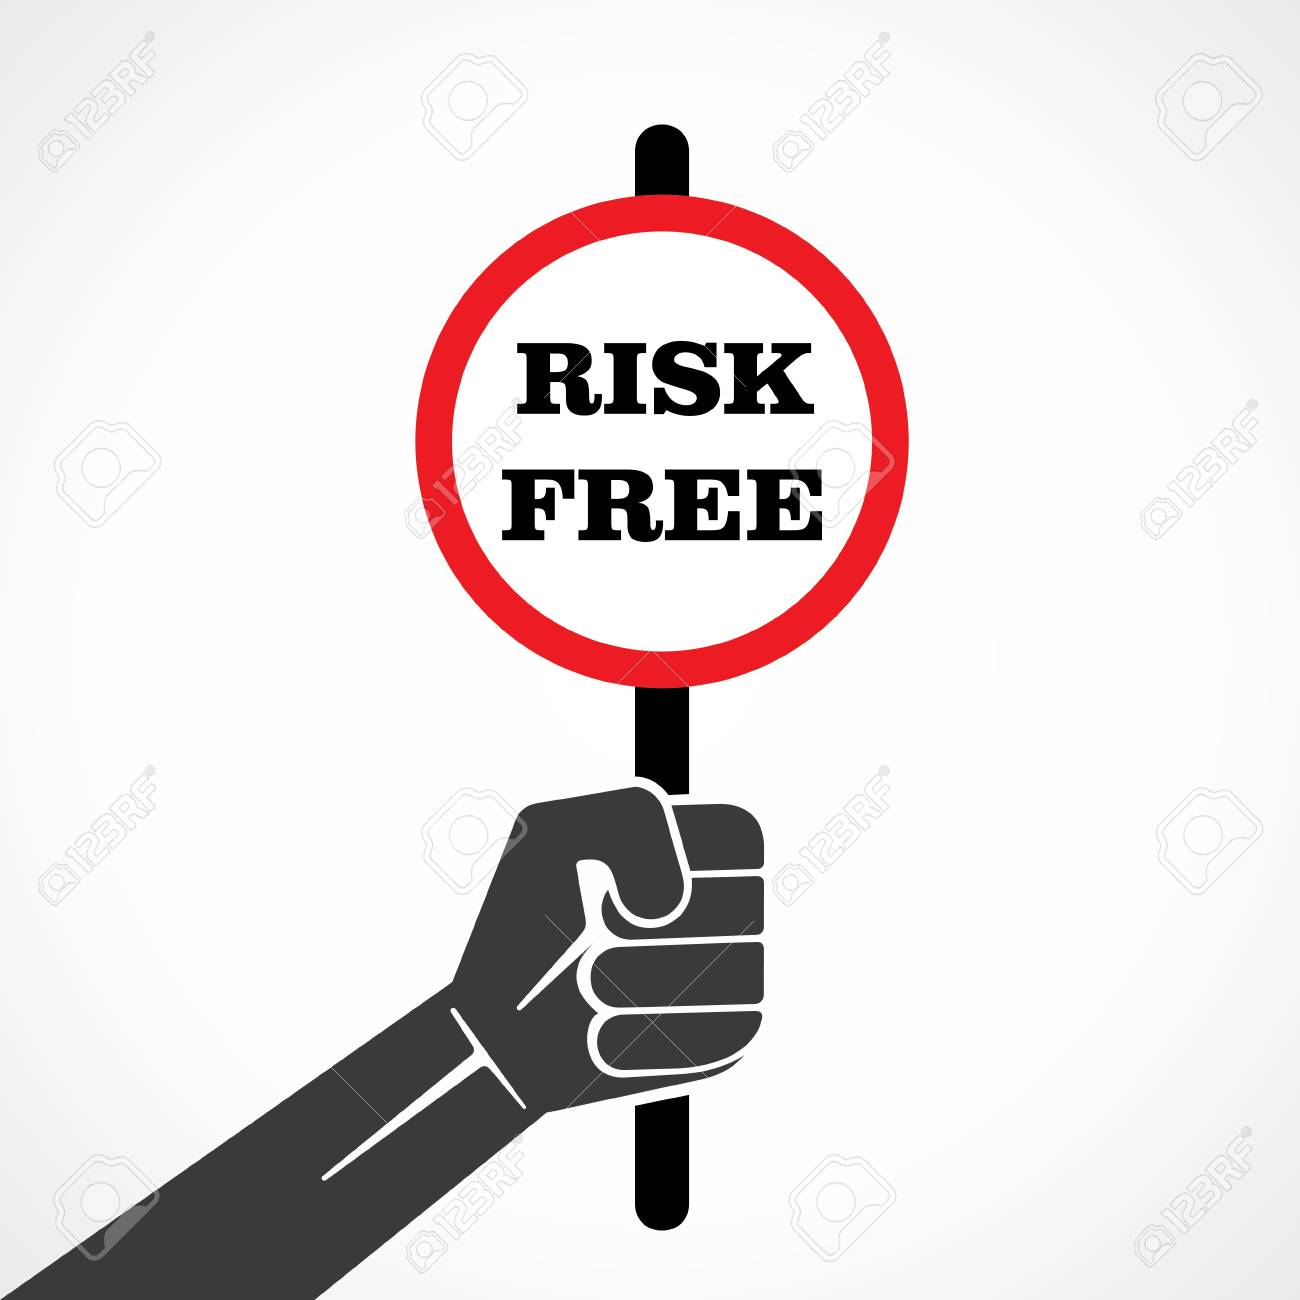 risk free placard hold in hand stock vector Stock Vector - 22092932